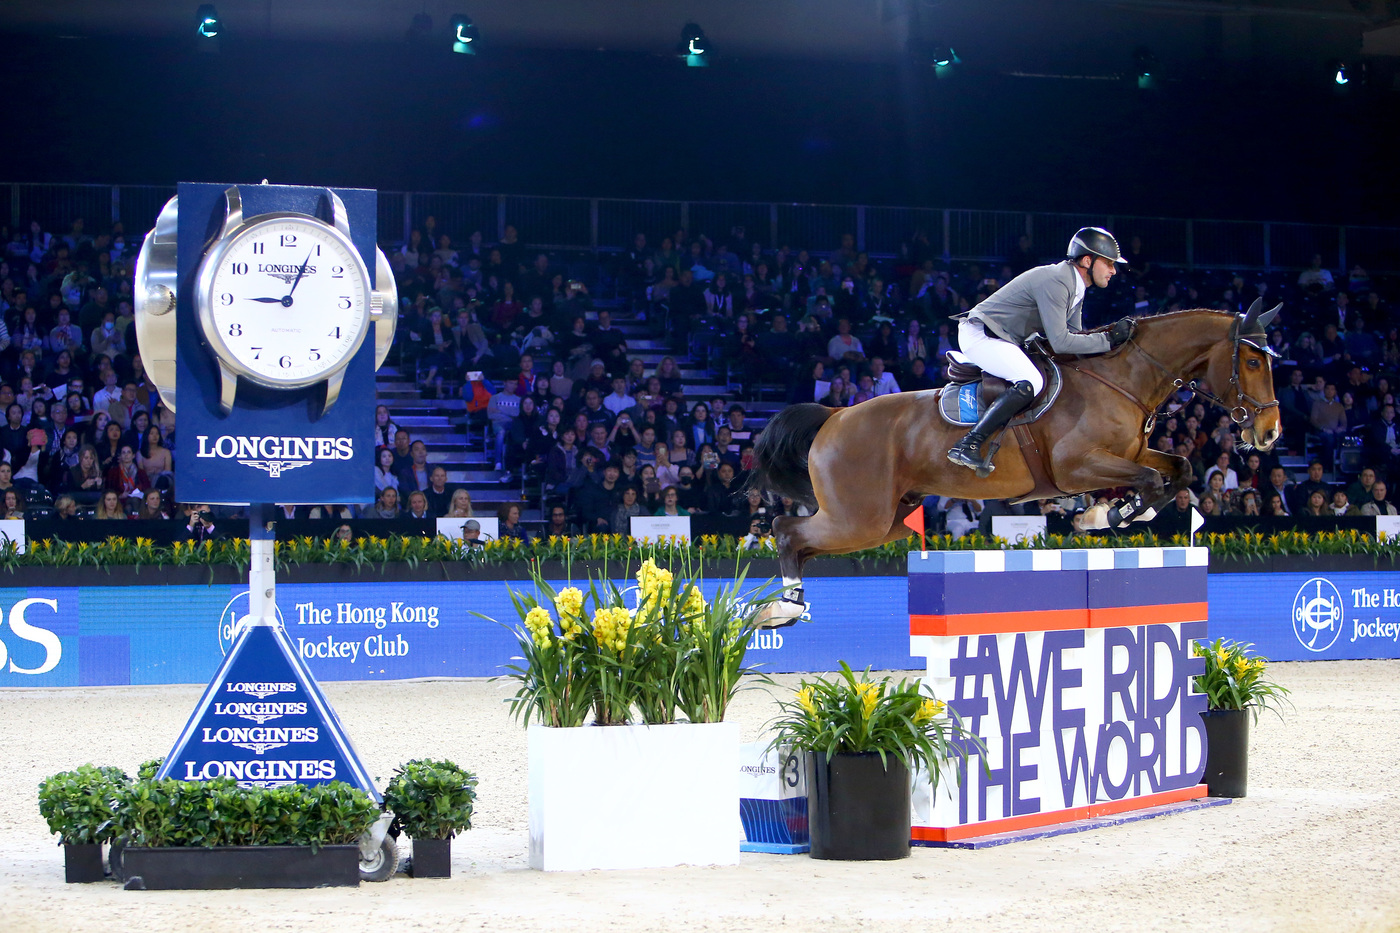 Longines Show Jumping Event: The Longines Masters of Hong Kong: Patrice Delaveau on Aquila HDC takes top class Longines Grand Prix win 11